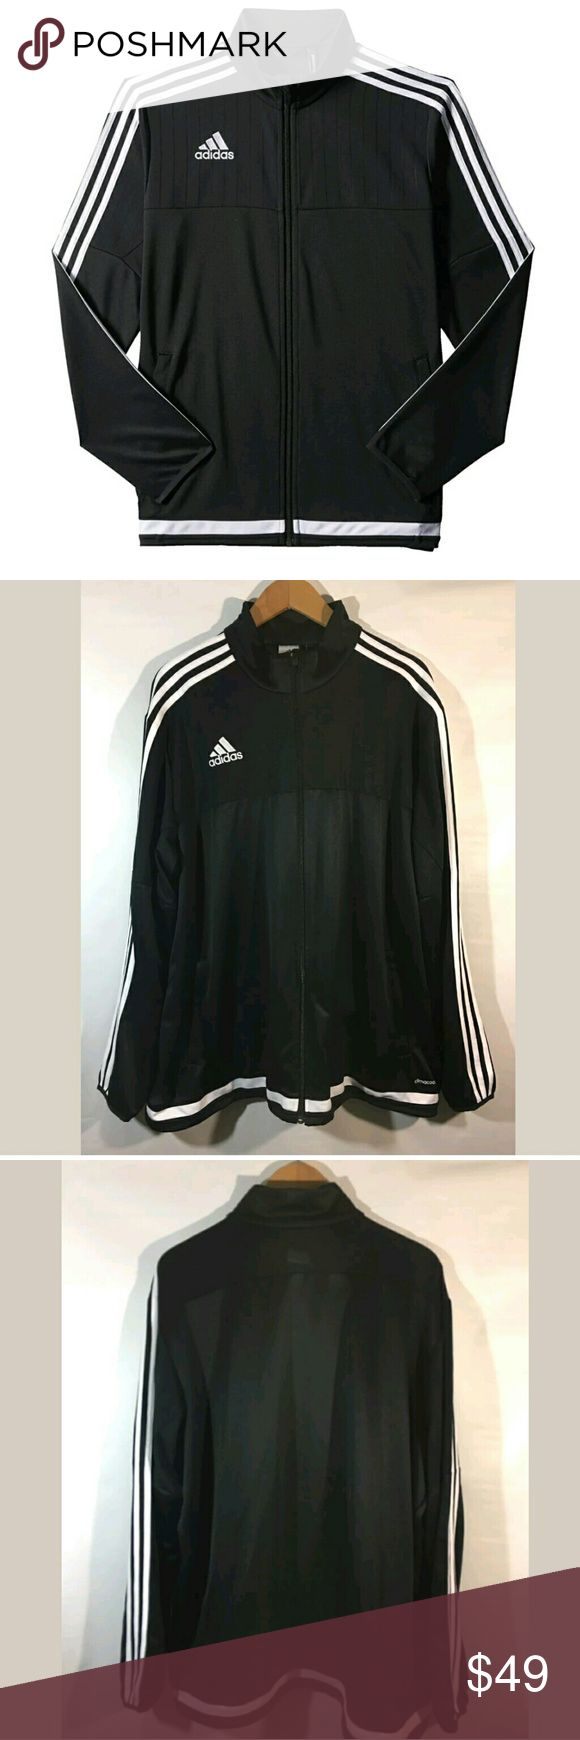 Adidas Jacket Men's 2XL Soccer Tiro 15 Training Adidas Jacket Men's 2XL Soccer Tiro 15 Training Stripes Black White  Excellent used condition.   27.5 inches pit to pit.  30 inches long.   LB adidas Jackets & Coats Performance Jackets